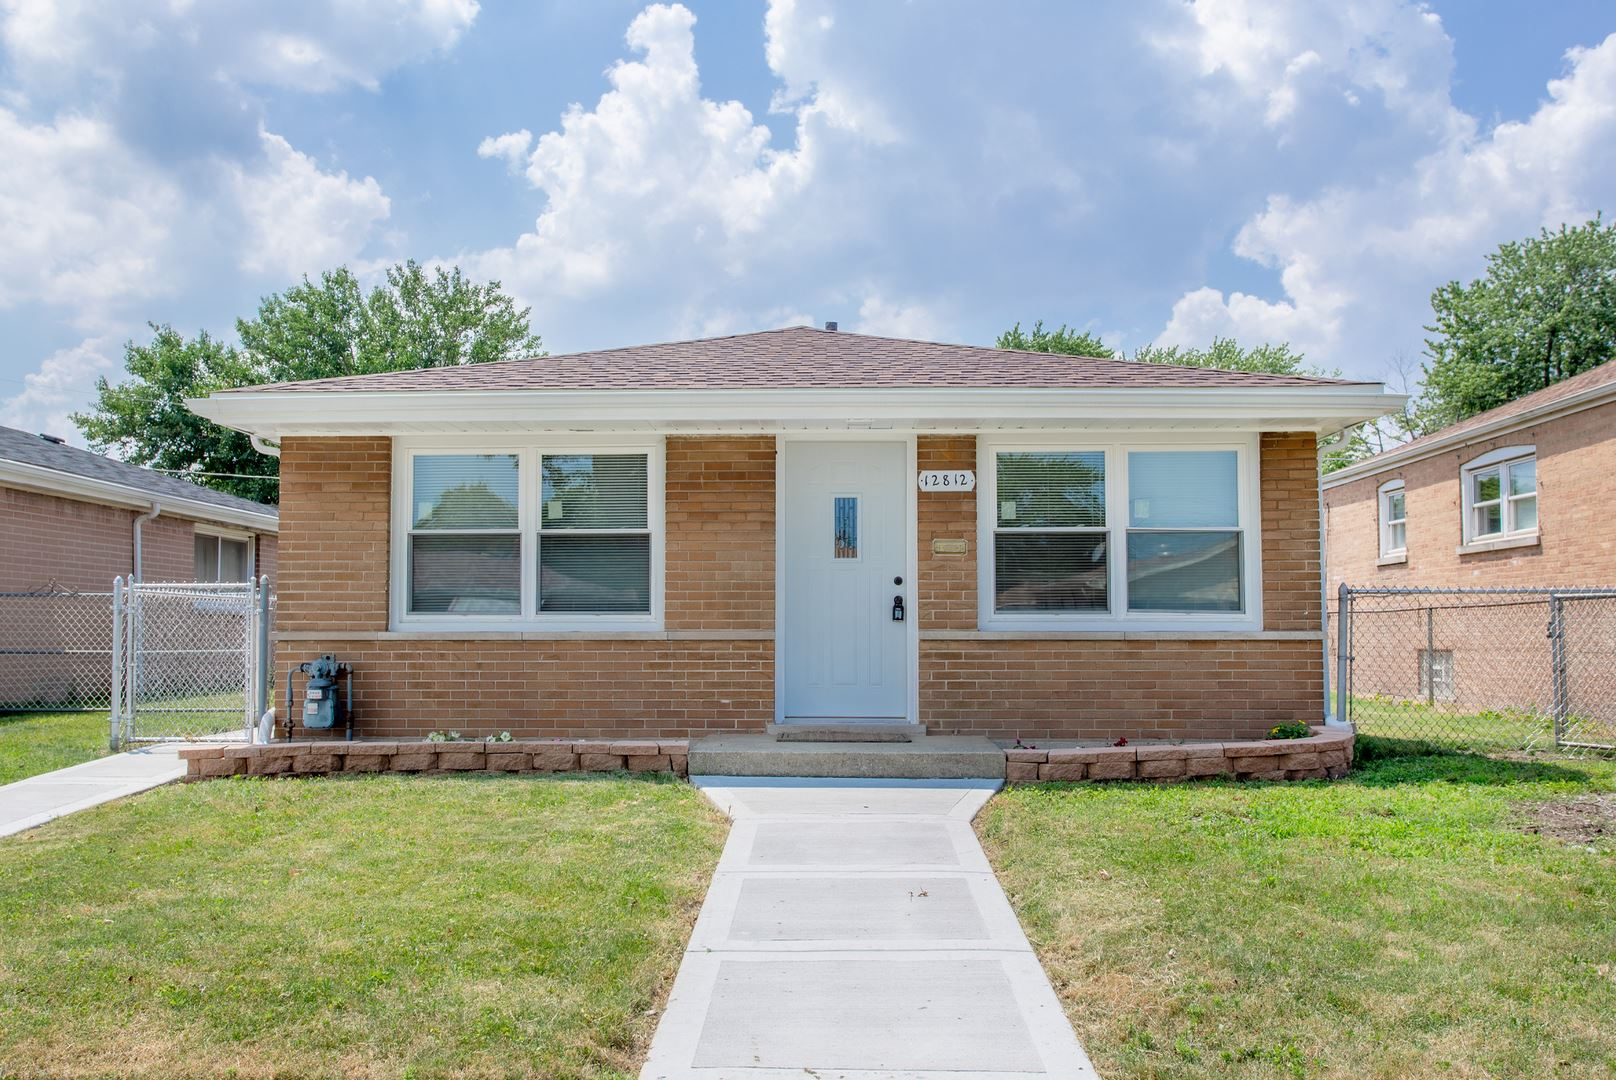 12812 S Manistee Avenue, Chicago, IL 60633 - #: 10777035